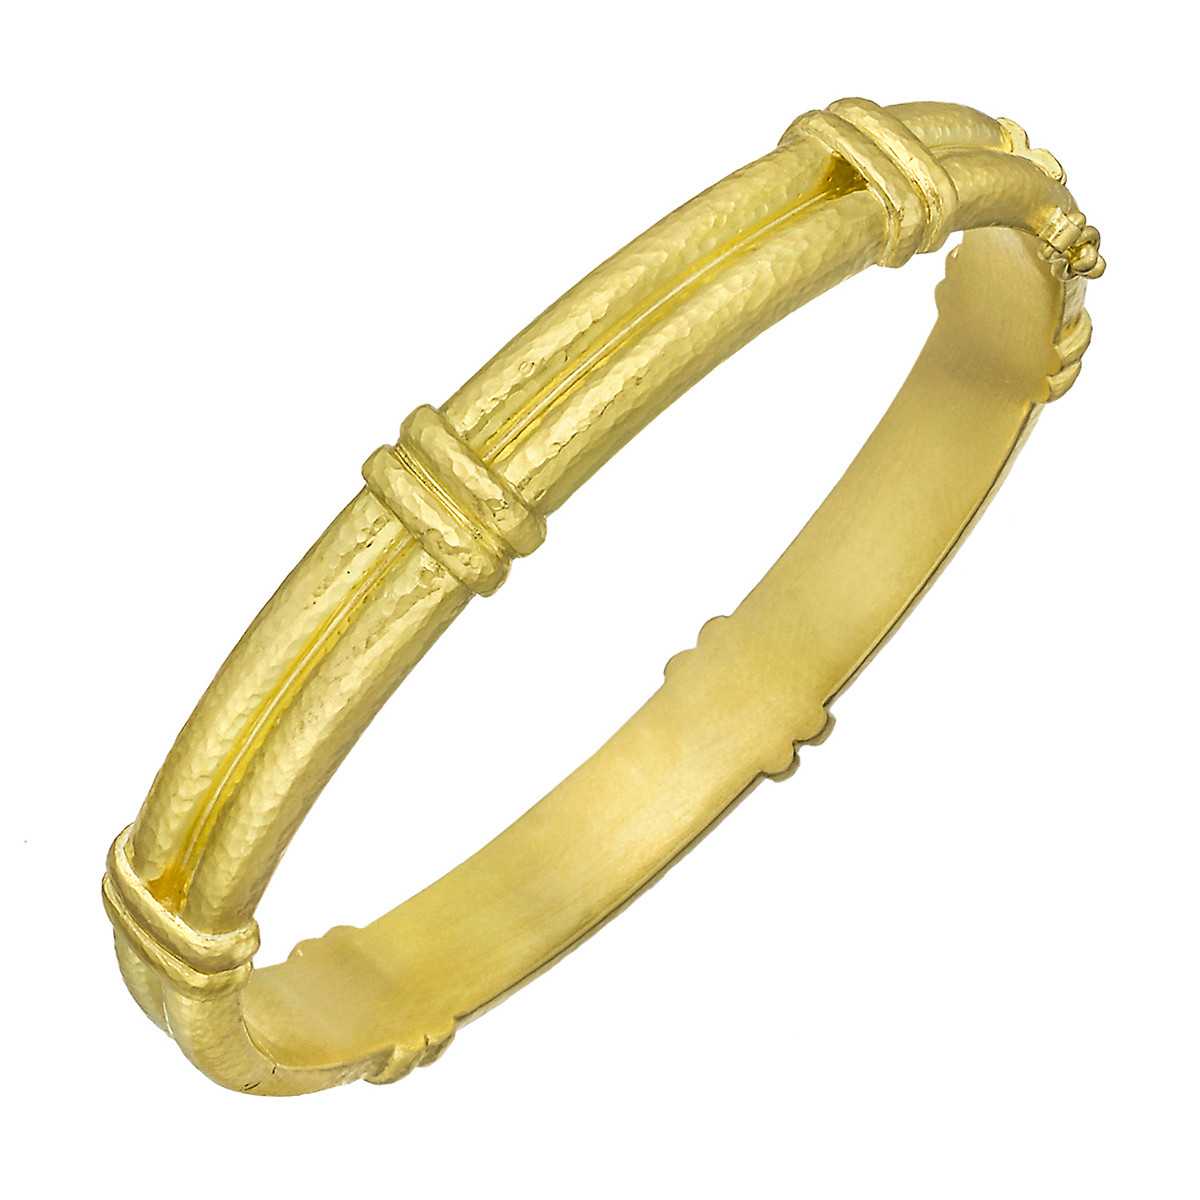 19k Yellow Gold Double-Banded Bangle